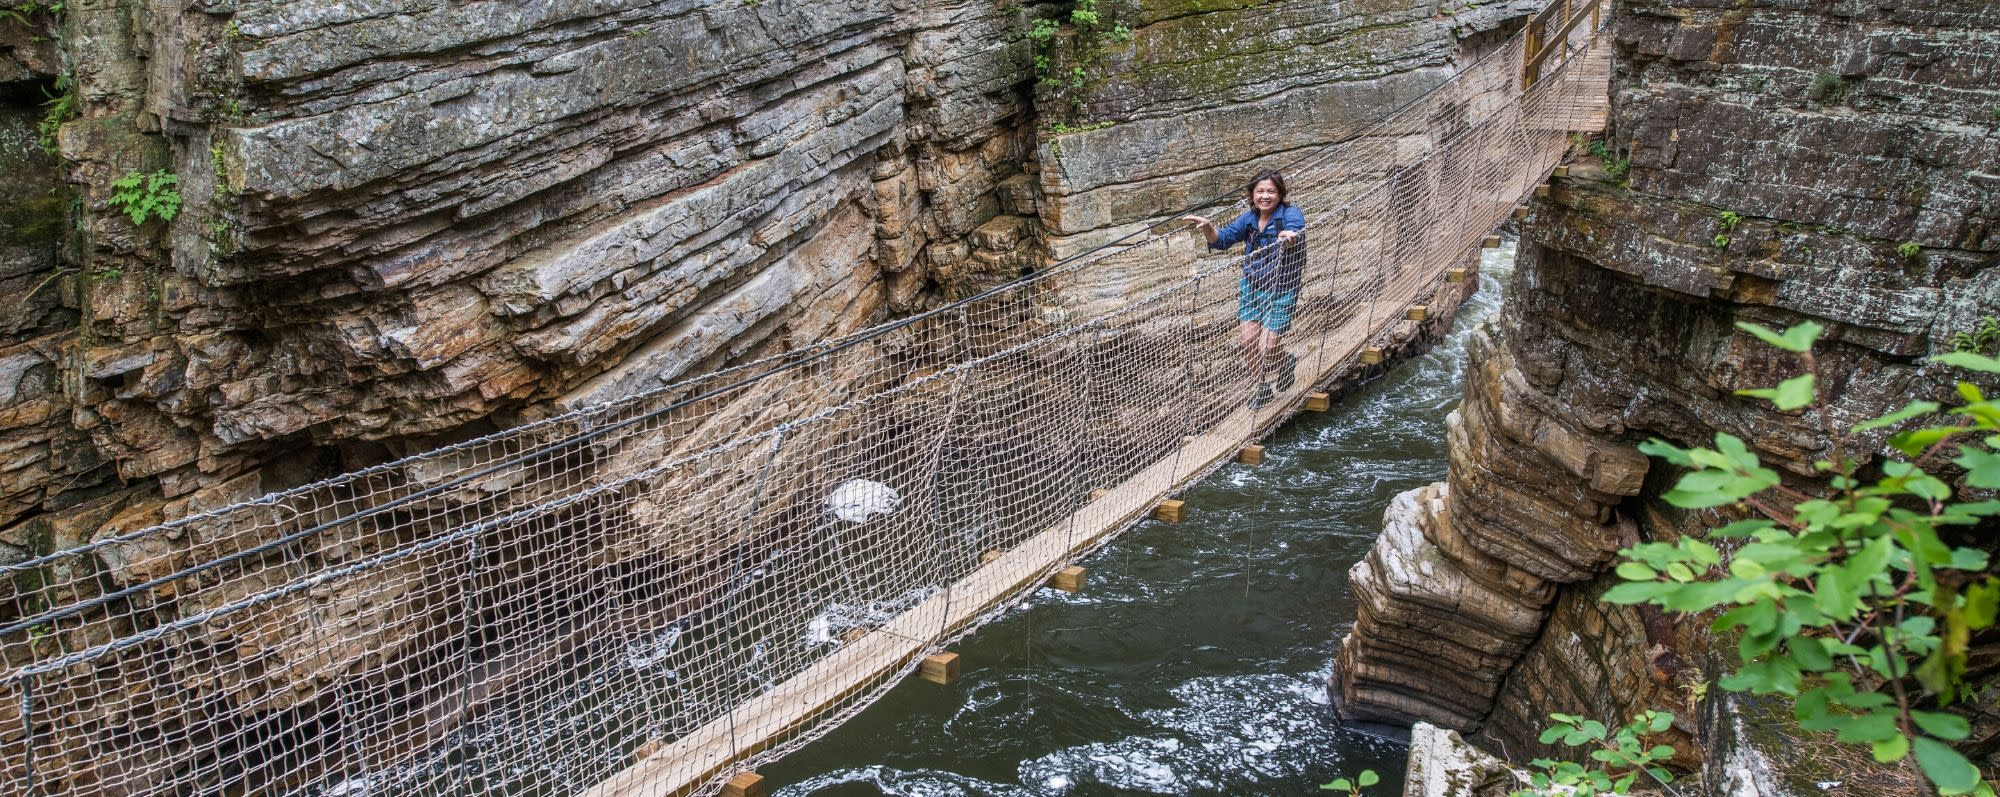 A person walks on a bridge between rocks in Ausable Chasm